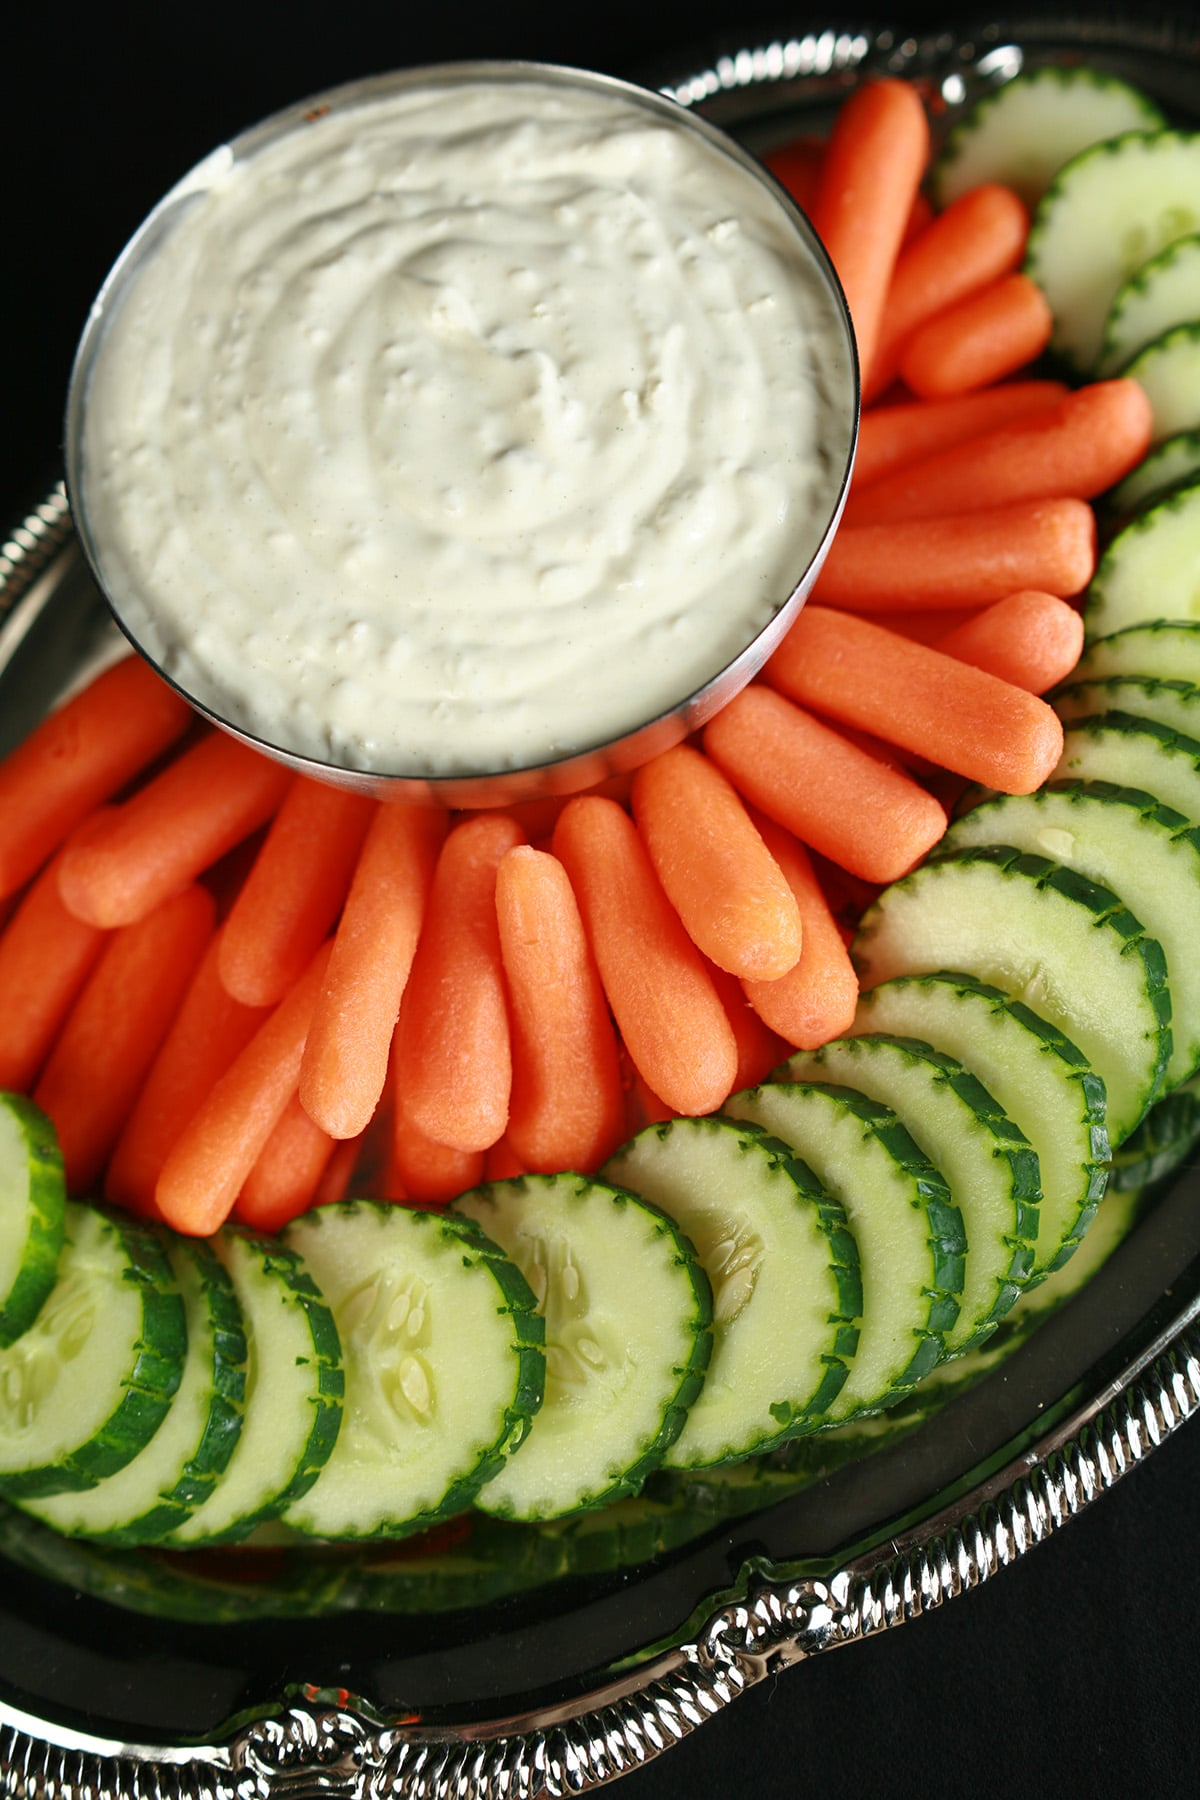 A bowl of ginger wasabi dip, surrounded by cucumber slices and baby carrots.